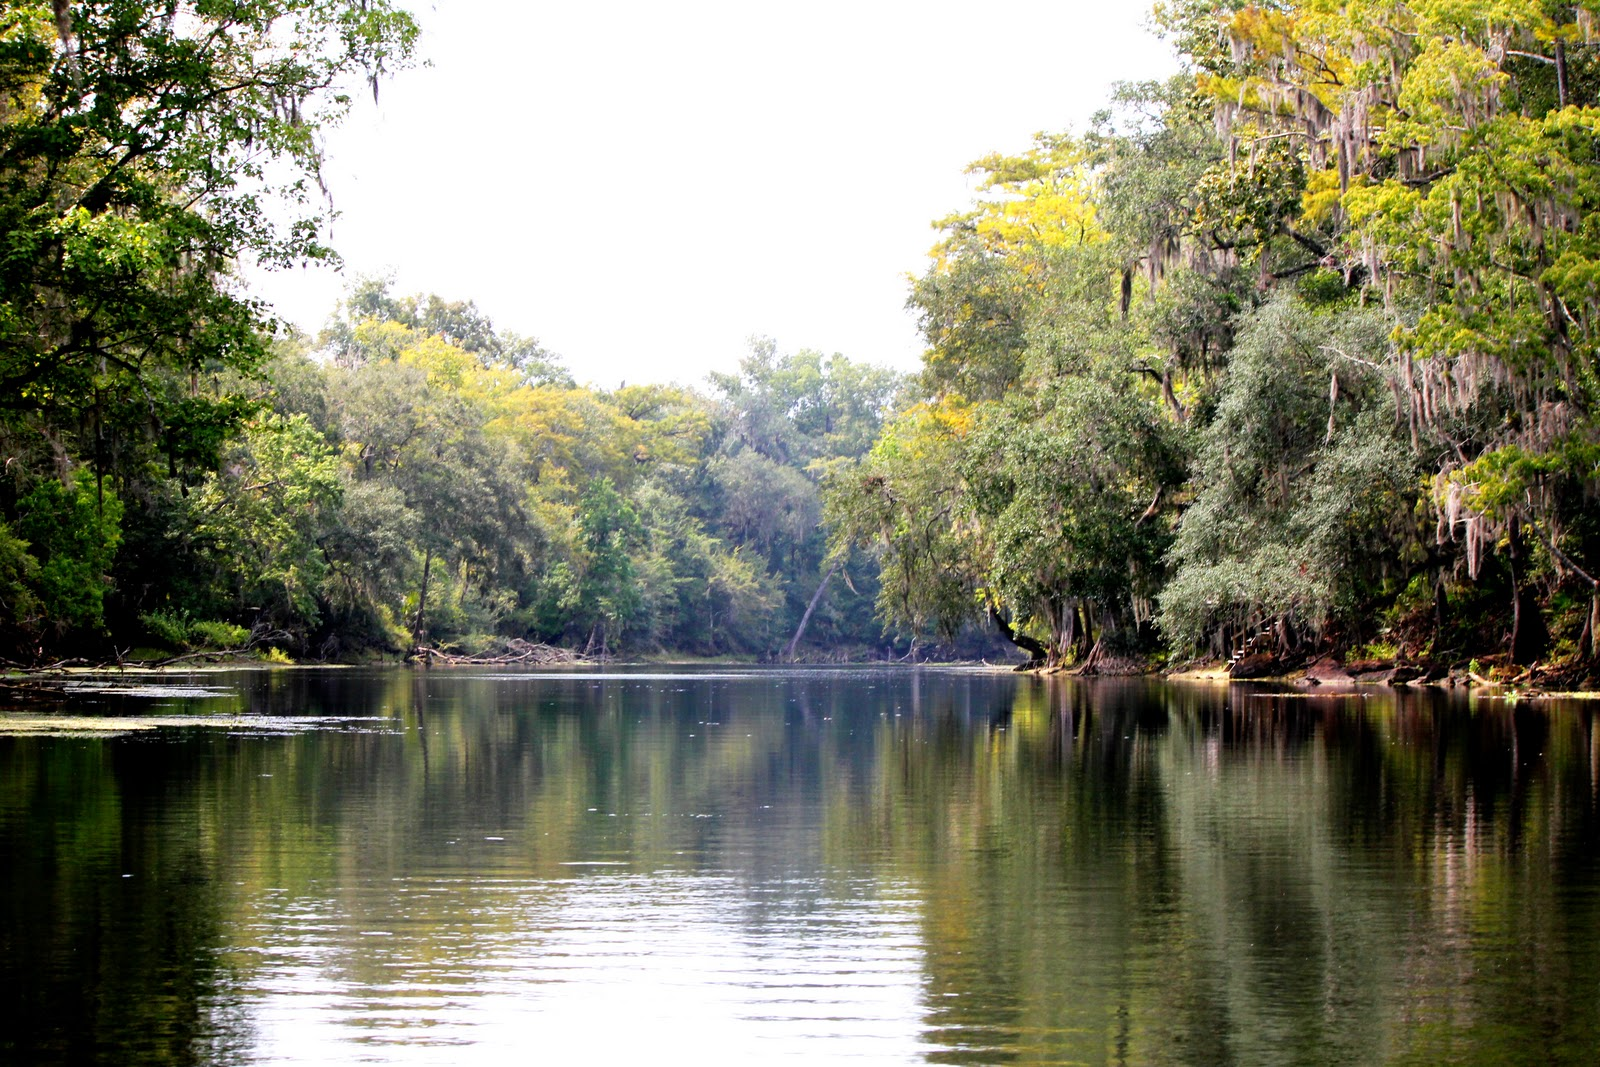 Advocates applaud Blue Springs purchase - News